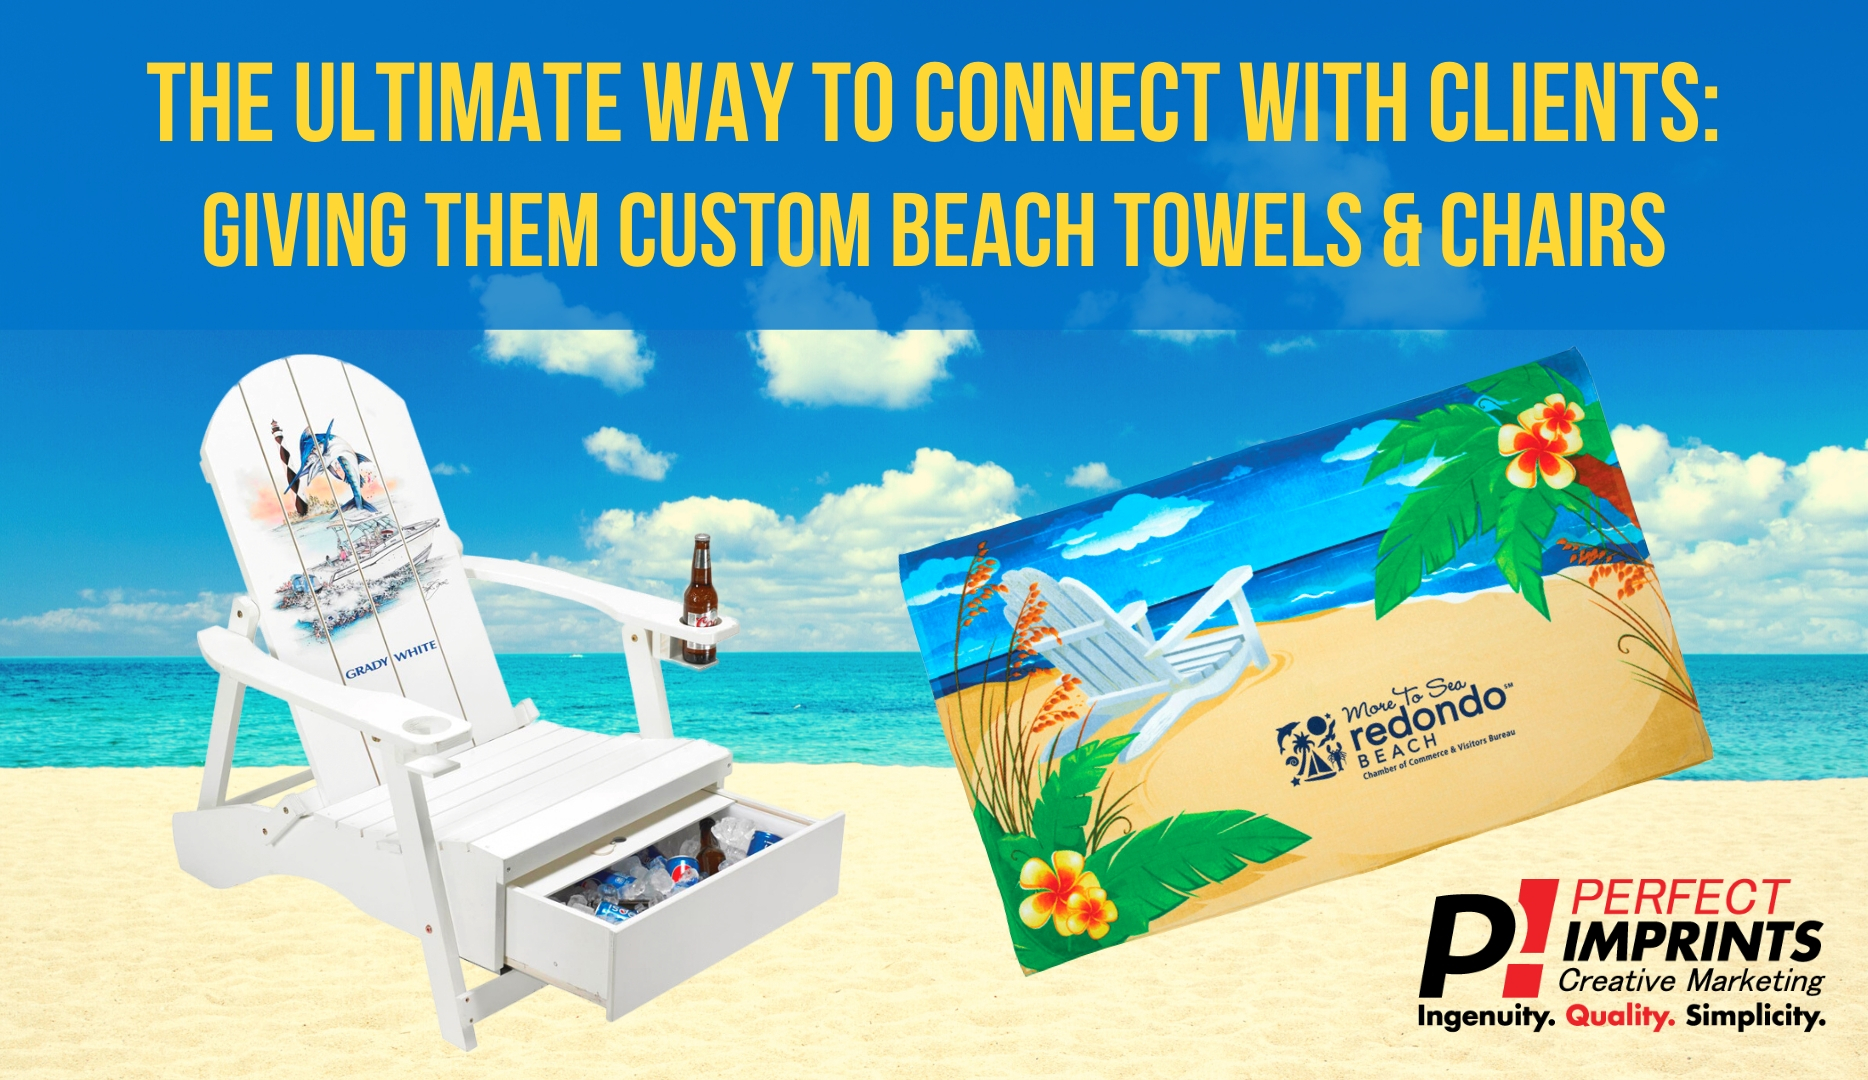 The Ultimate Way to Connect with Clients: Giving Them Custom Beach Towels and Chairs